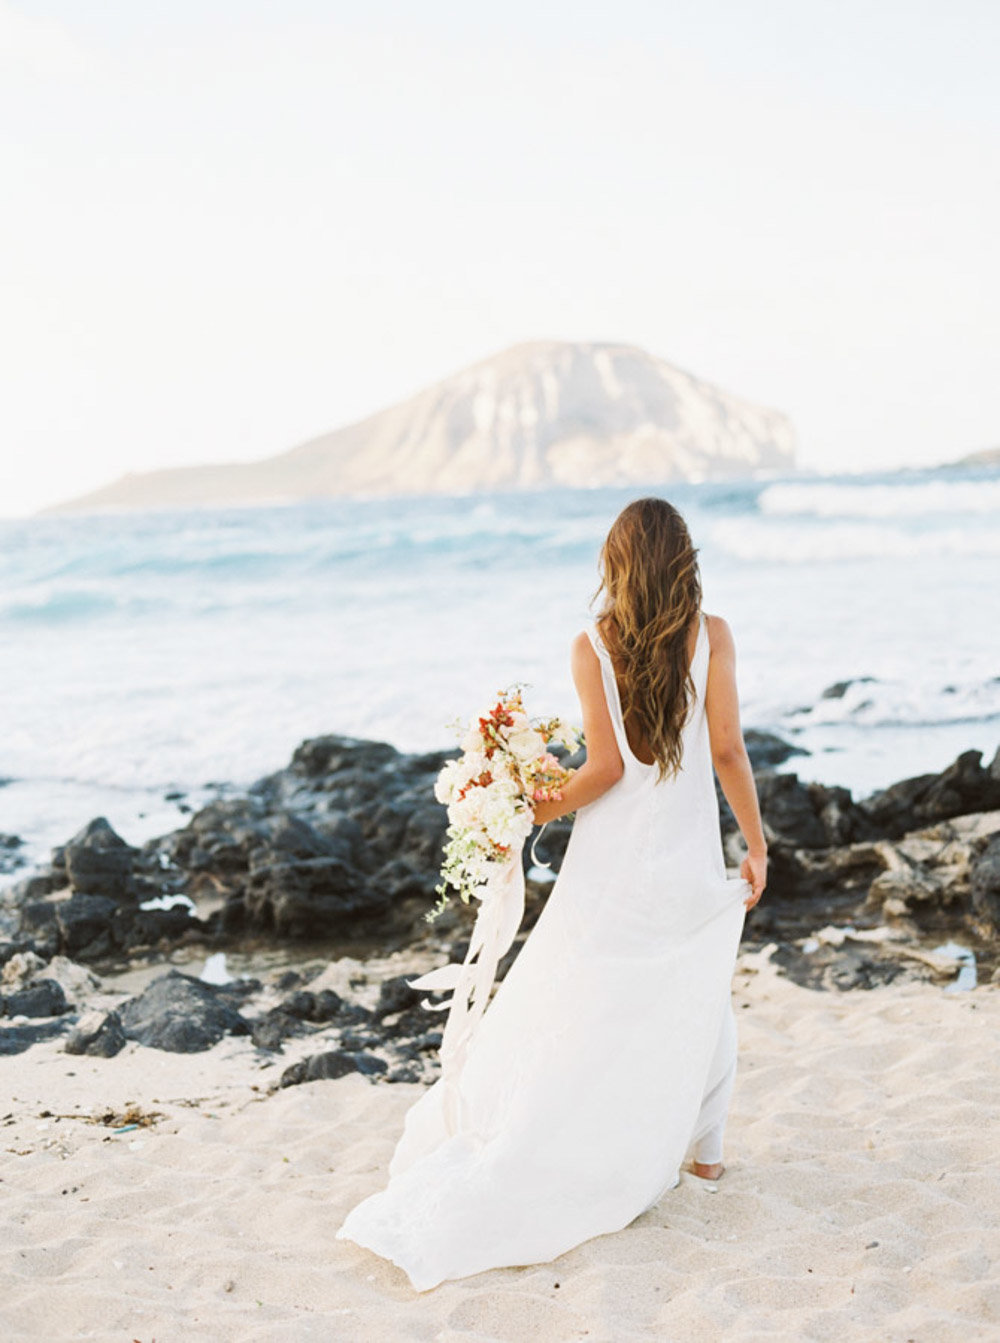 Hawaii Destination Wedding Photographer Sheri McMahon - Hawaii Beach Elopement-00013